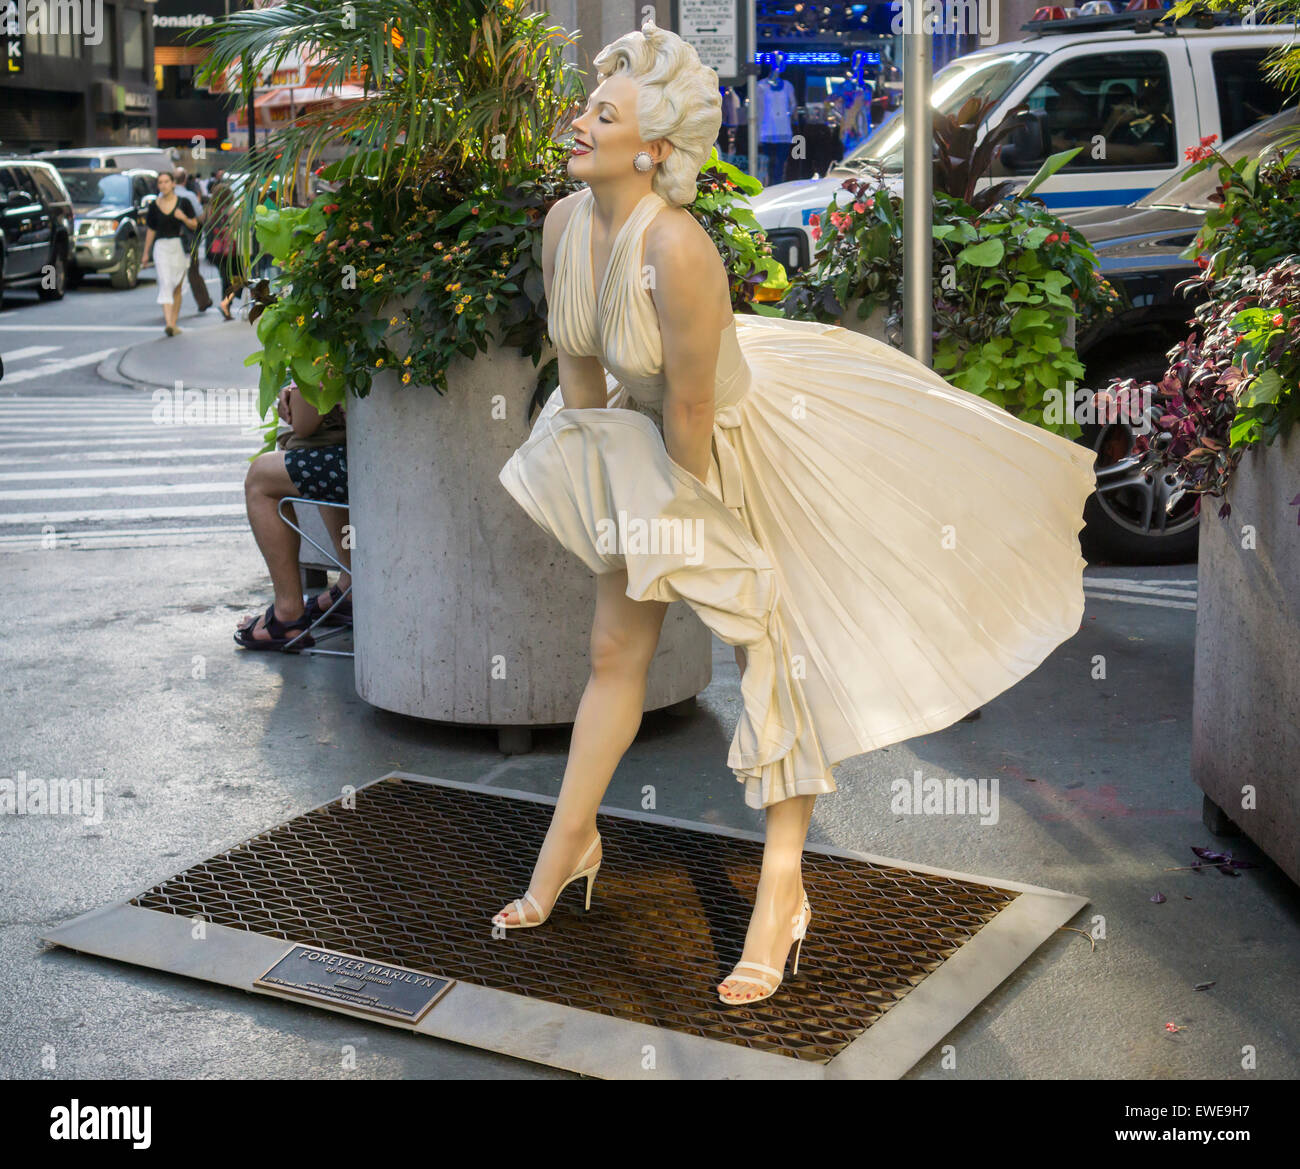 Forever Marilyn by the artist Seward Johnson on the Broadway pedestrian plazas in the Garment District in New York - Stock Image